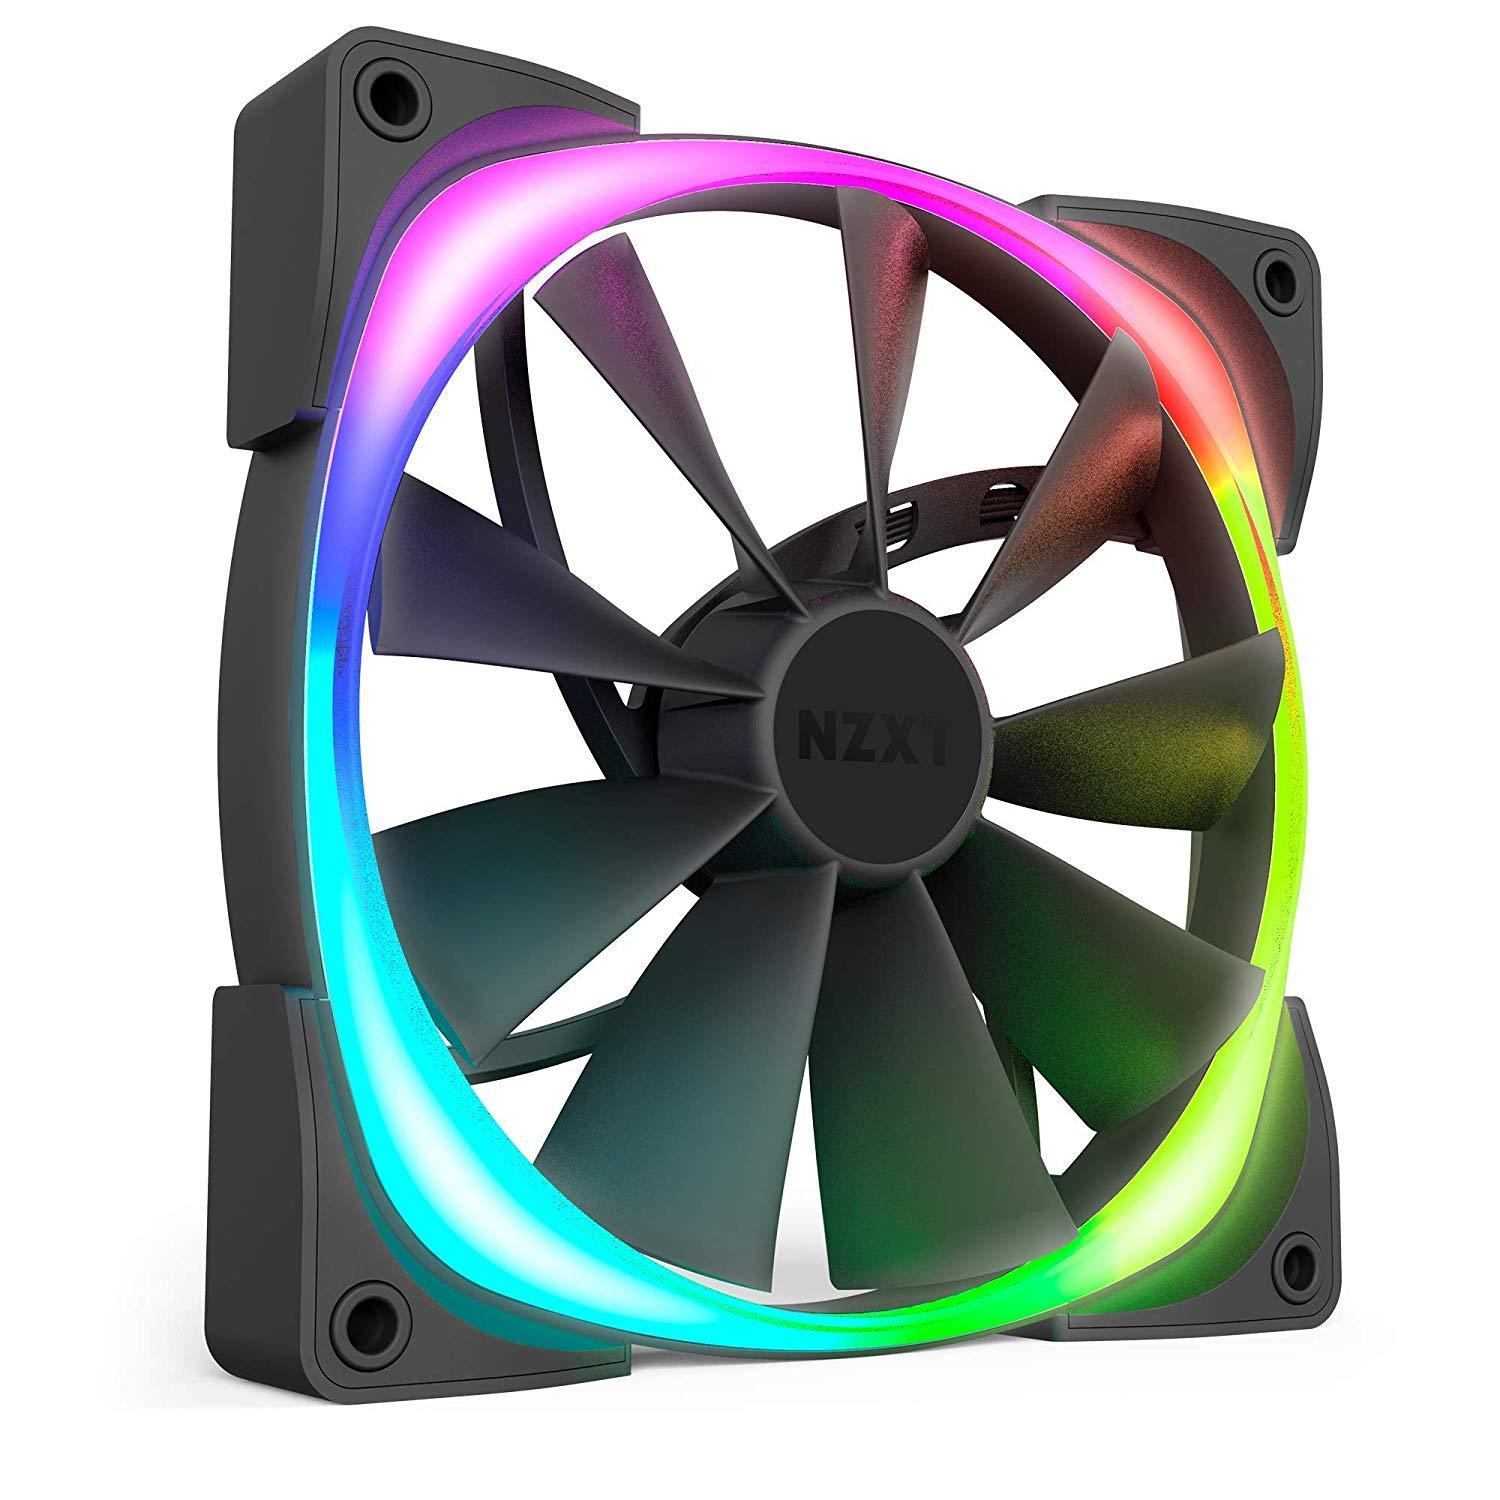 NZXT Aer RGB 2 140 Single Fan